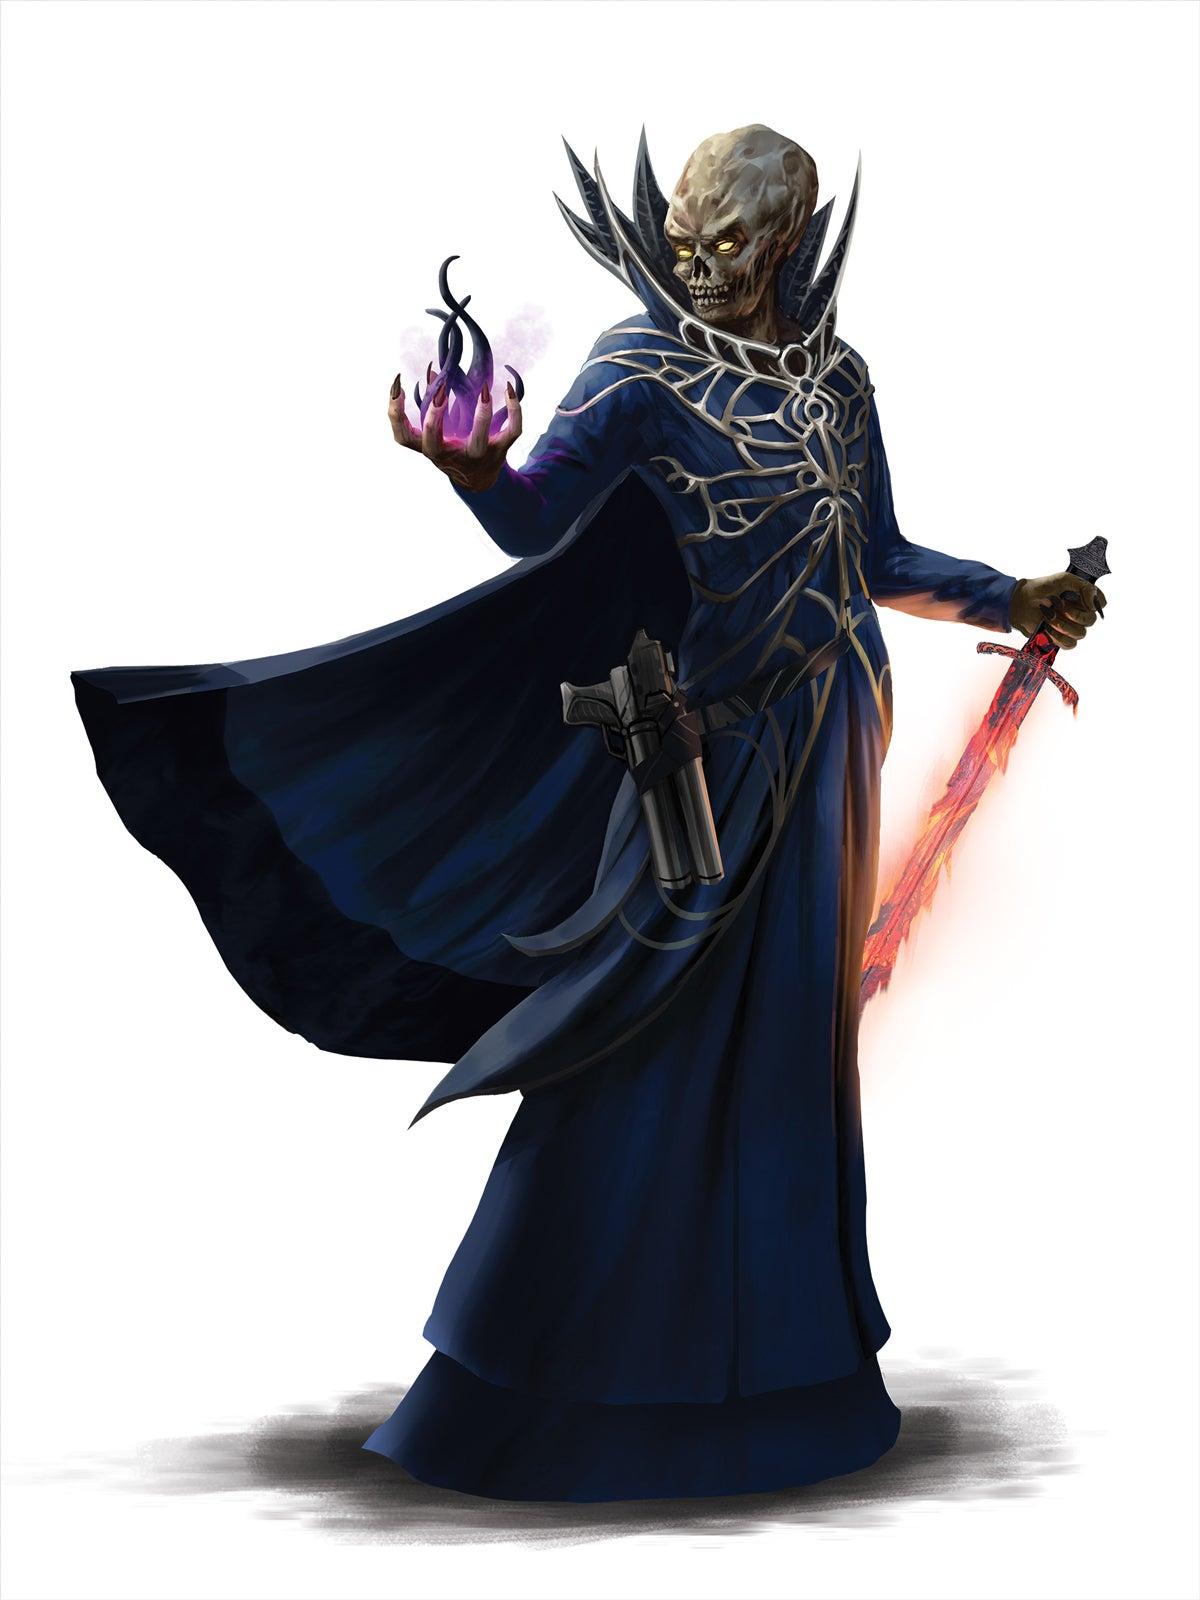 A grey, yellow eyed alien stands in dark blue robes with a pistol on their hip. Holding a flaming sword at one side and summoning a dark tentacled energy from their other hand